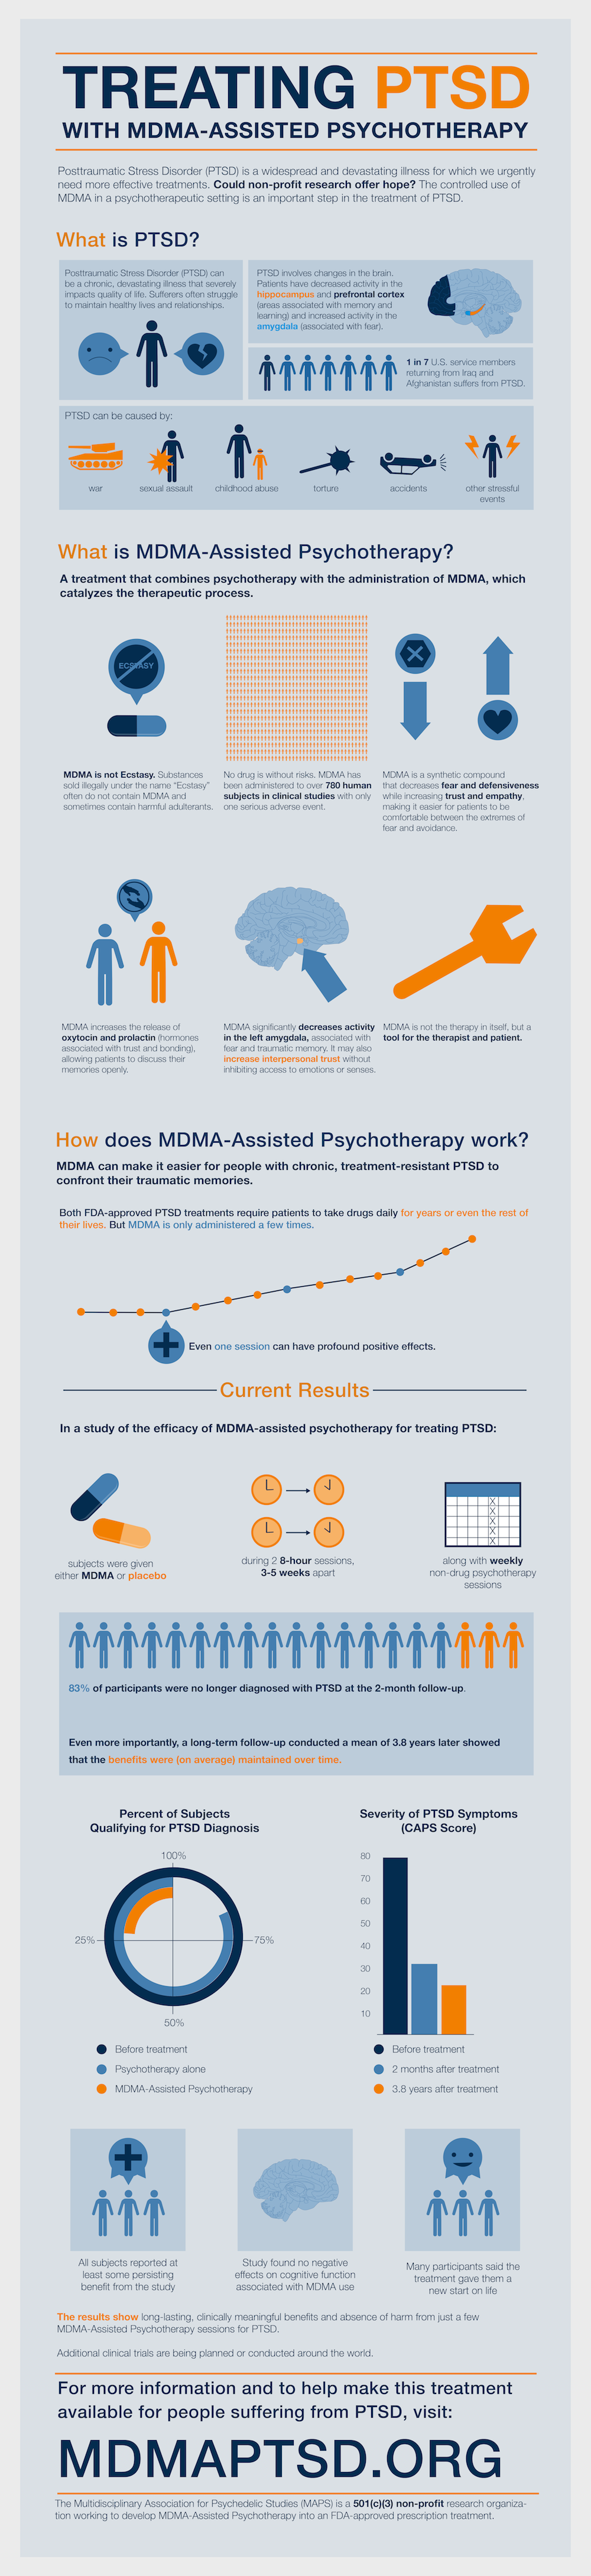 MDMA-Assisted Psychotherapy - MAPS